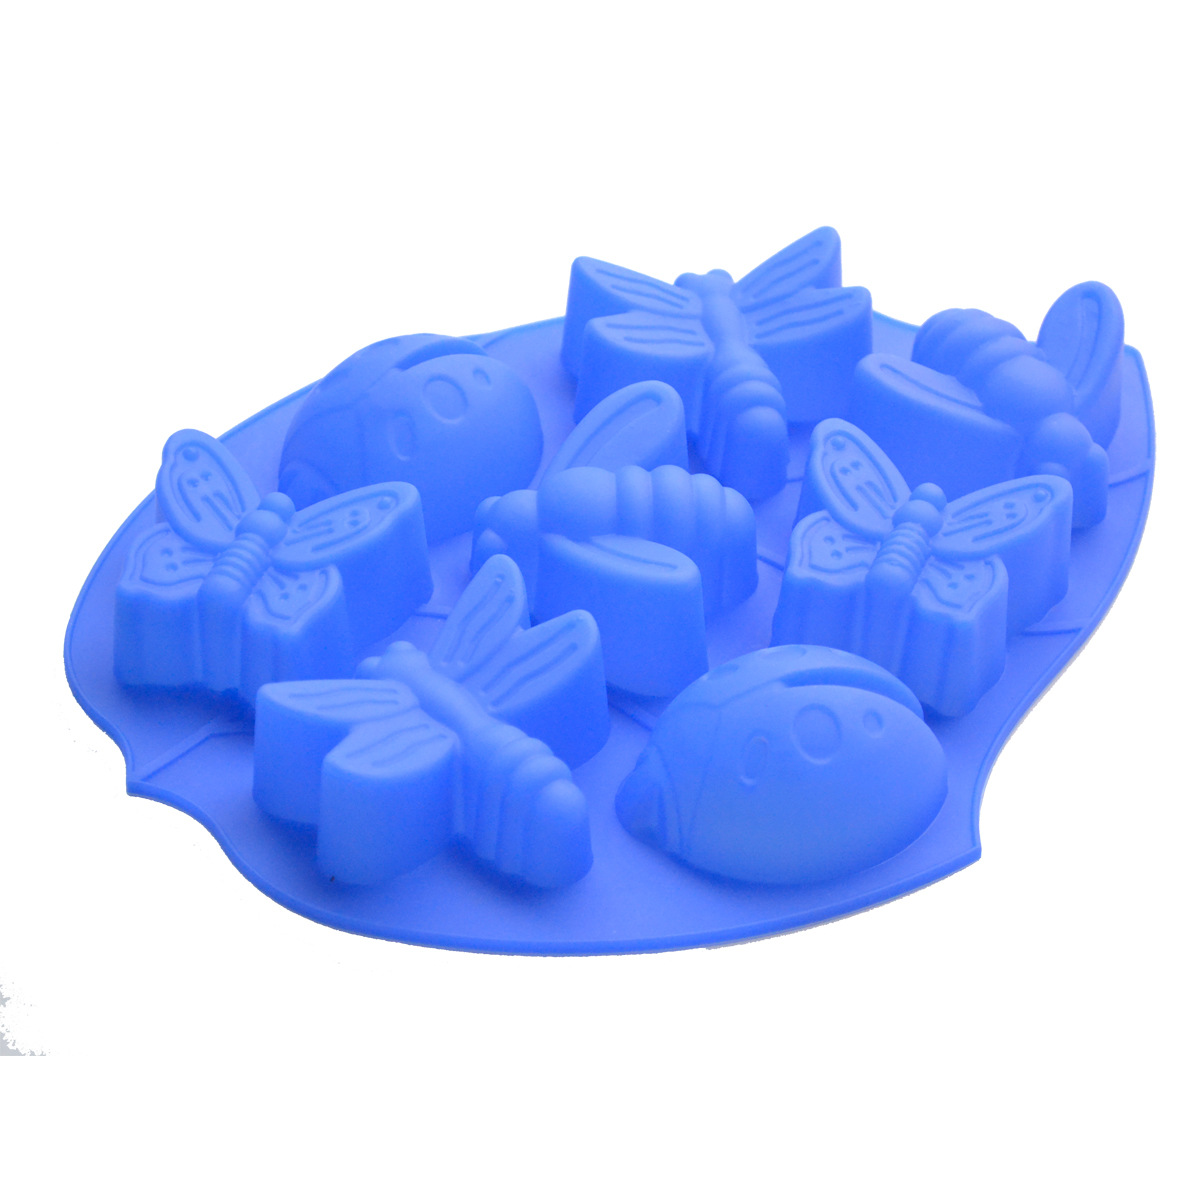 Factory Directly Ing Batch 8 Insects Silicone Cake Mold Jelly Pudding Molds Diy Handmade Soap Mould